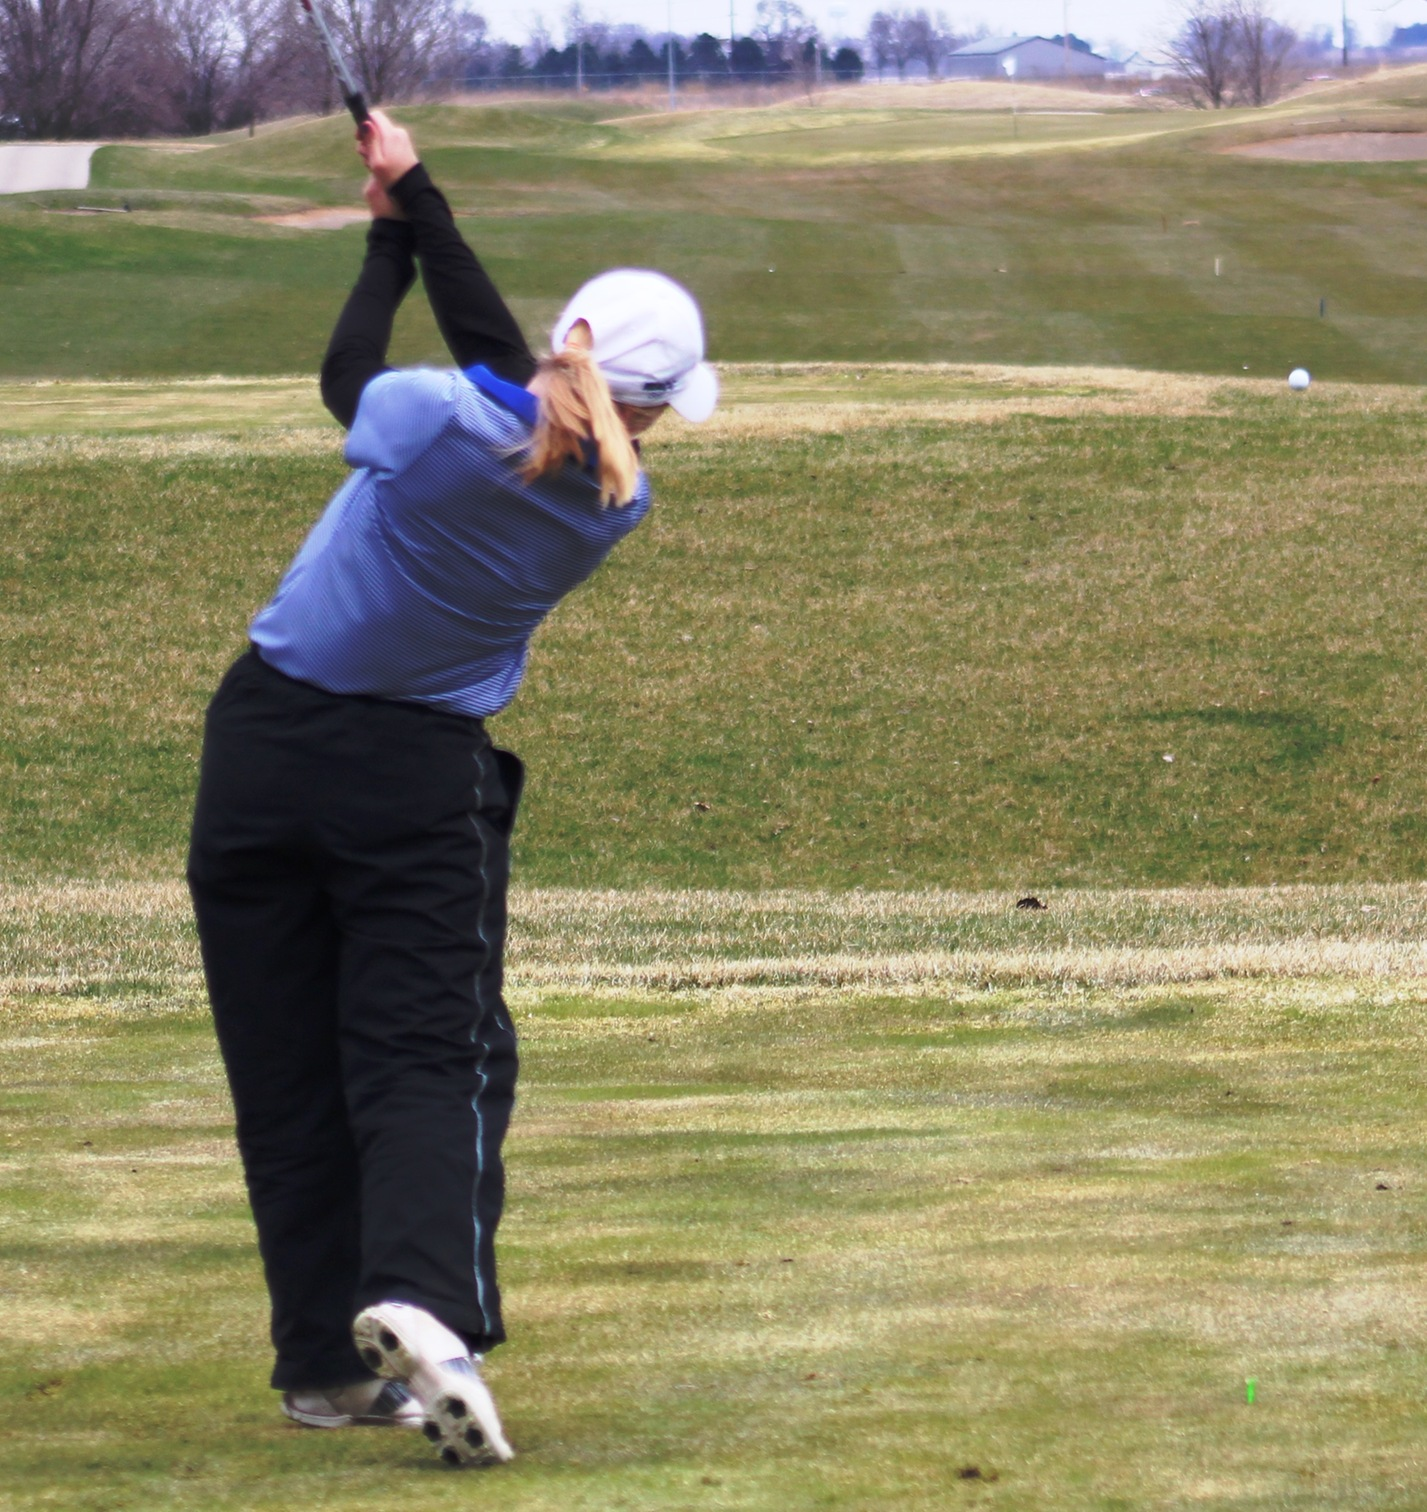 NIACC's Courtney Tusler tees off during the first round of the regional golf tournament last Friday in Ankeny.